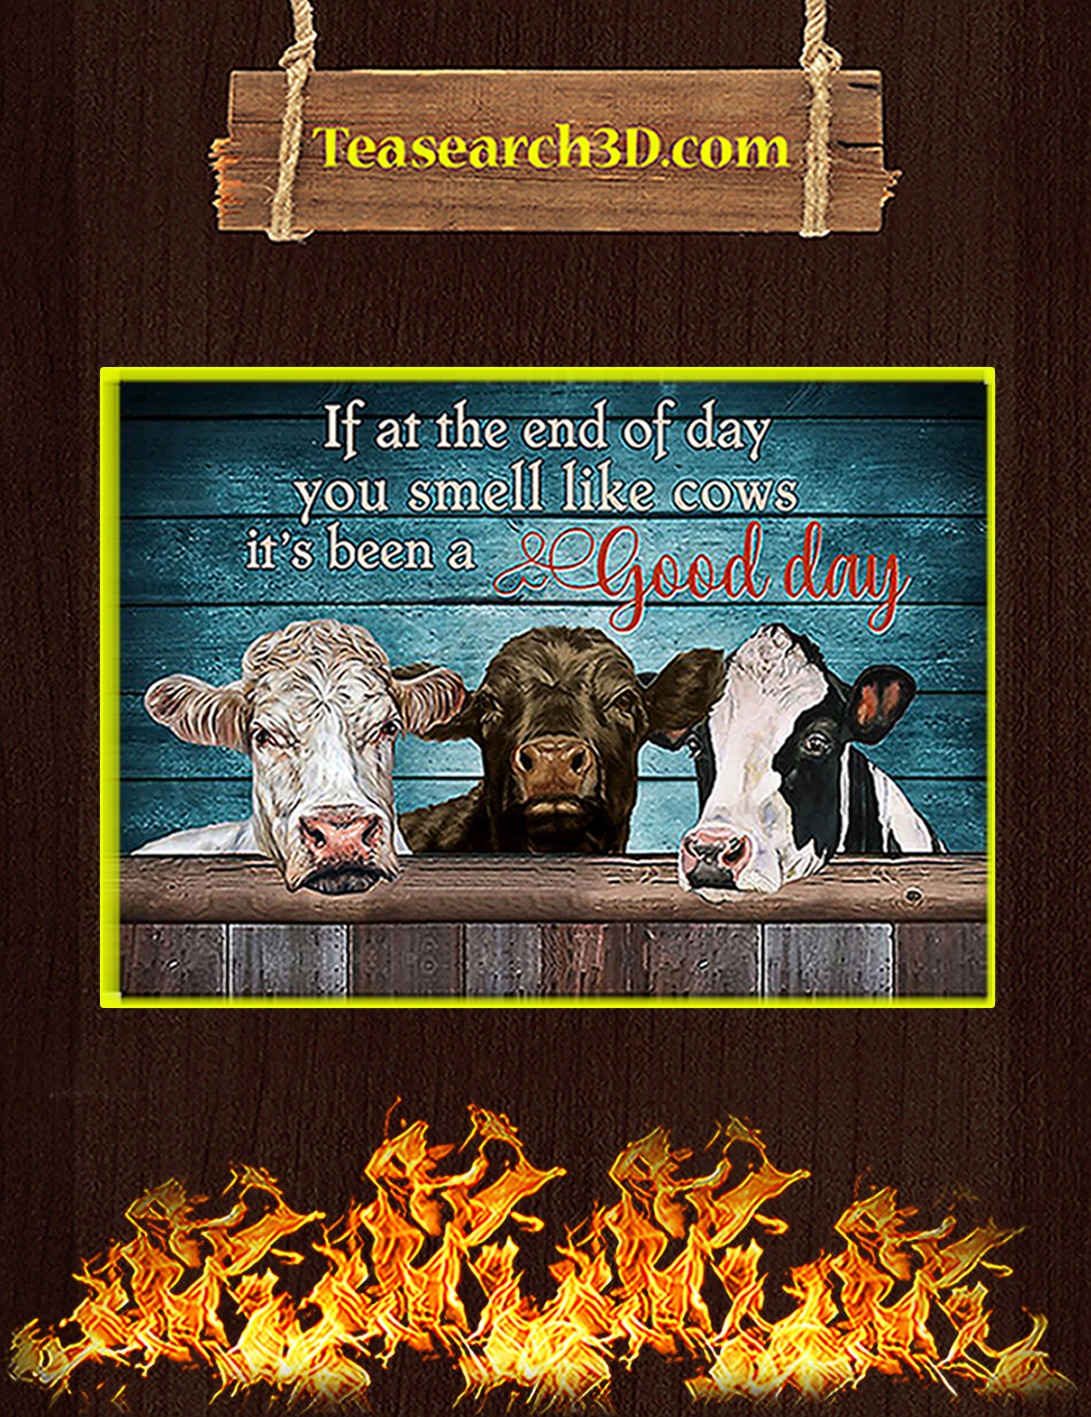 If in the end of day you smell like cows it's been a good day poster A2